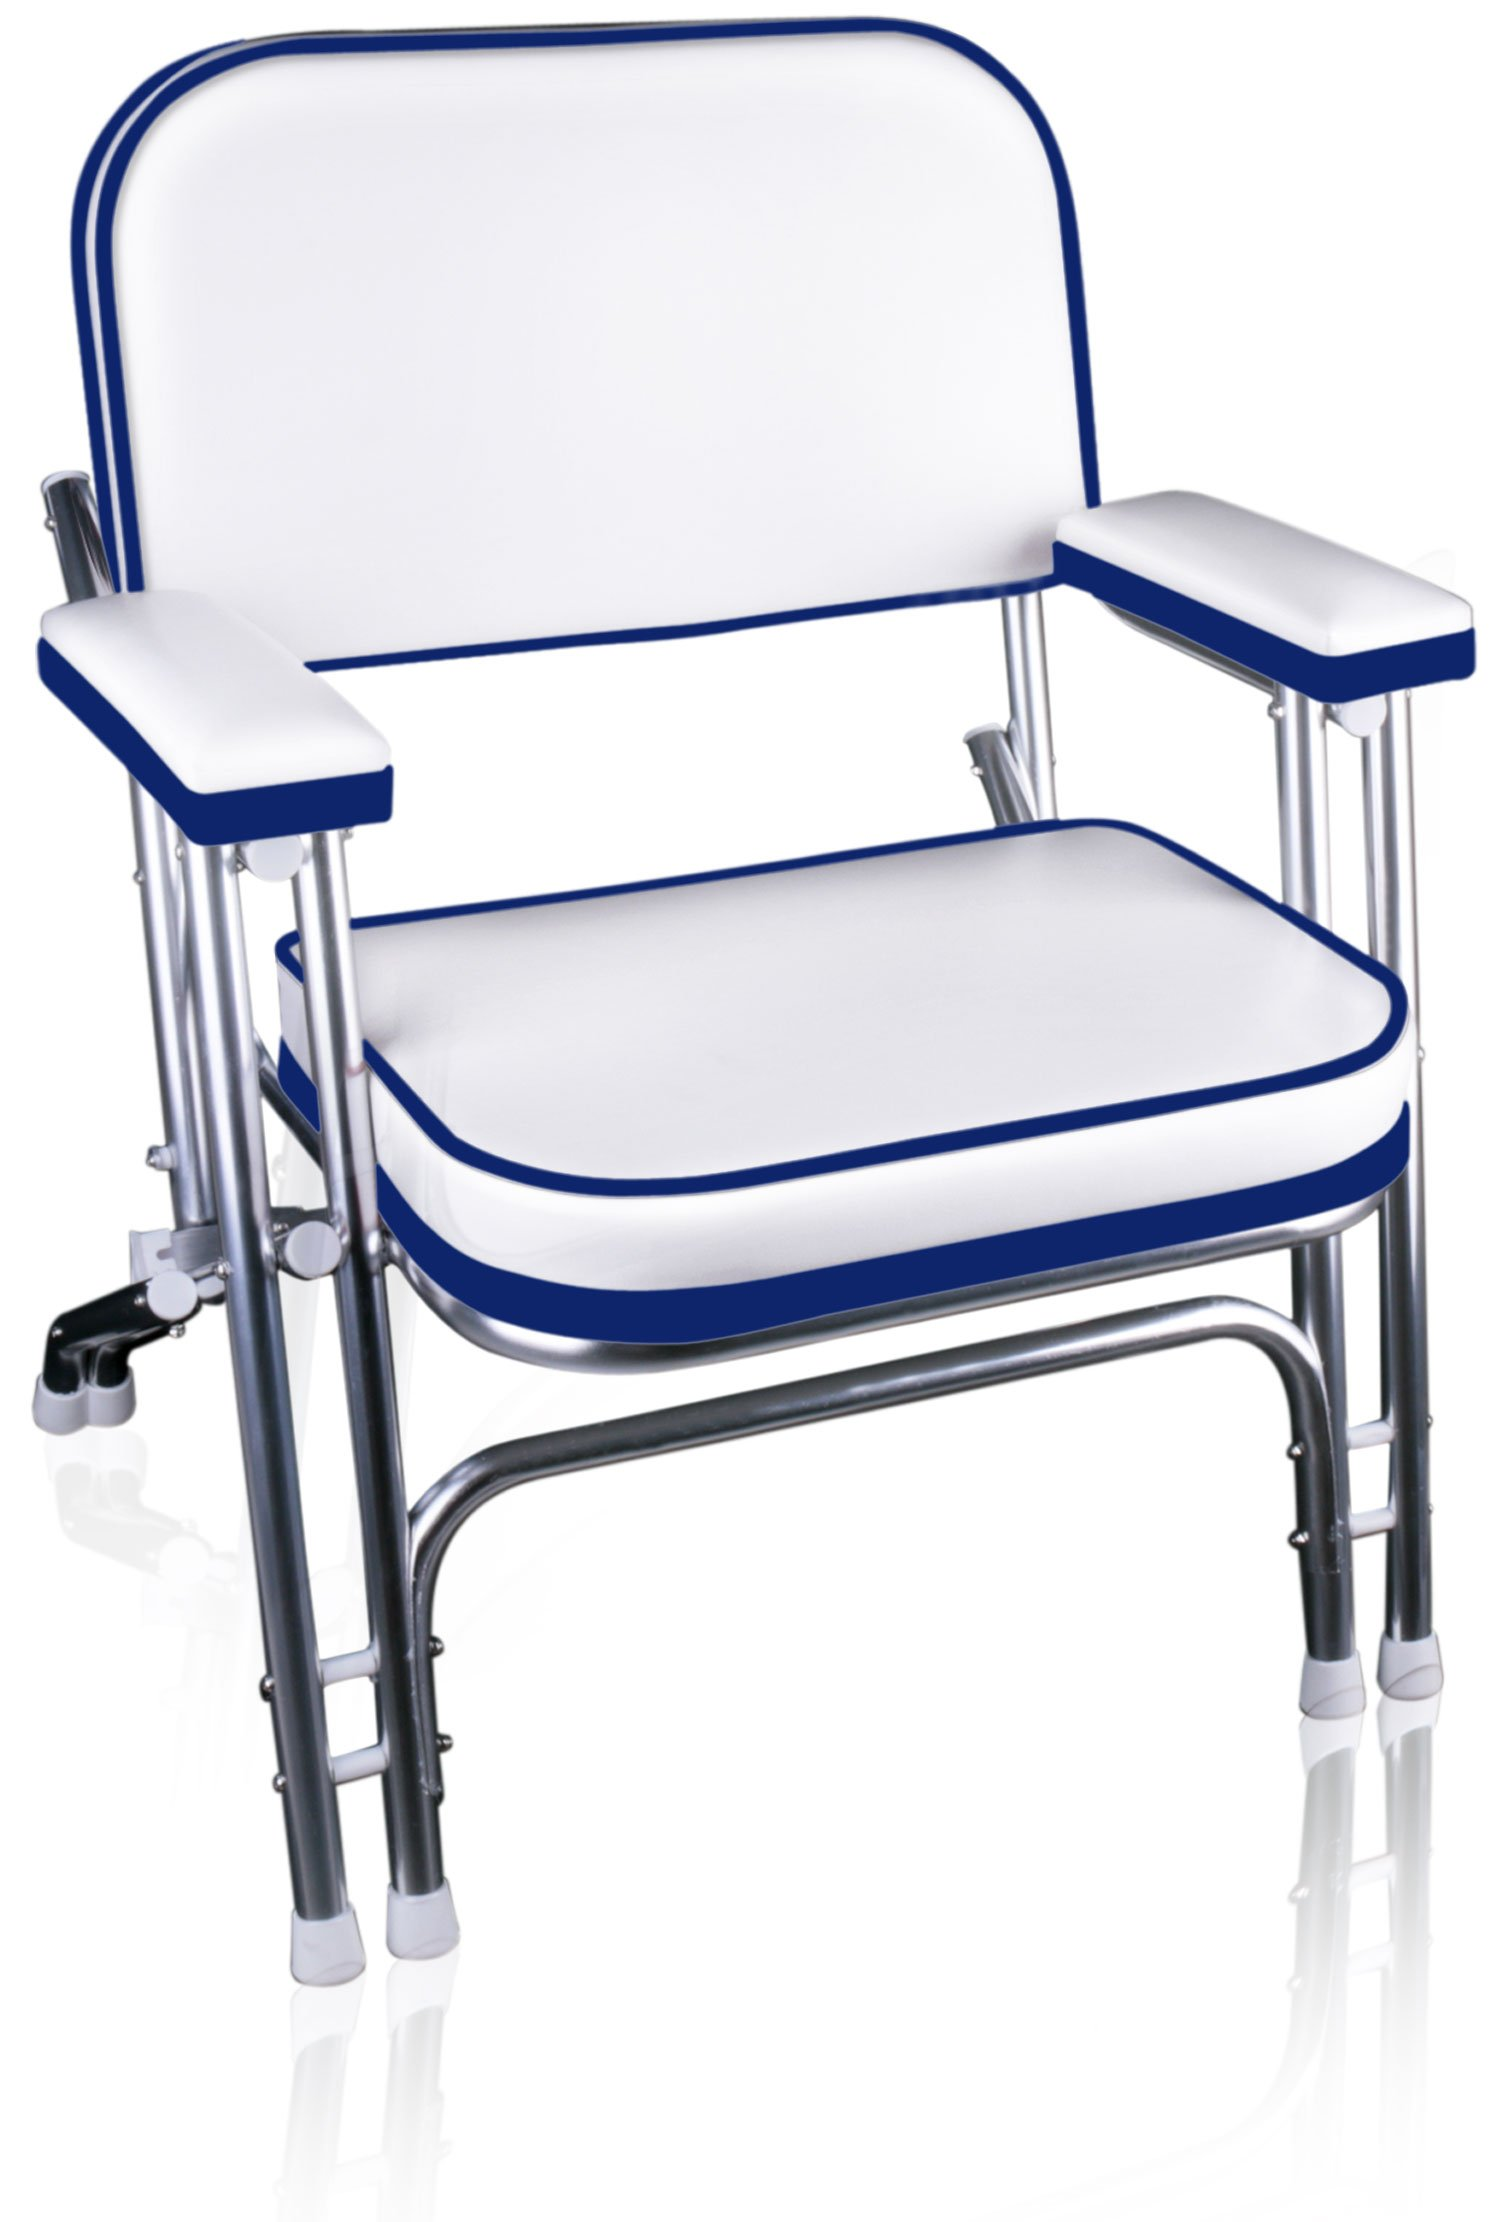 Leader Accessories Portable Folding Deck Chair with Aluminum Frame and Armrests(White/Blue) by Leader Accessories